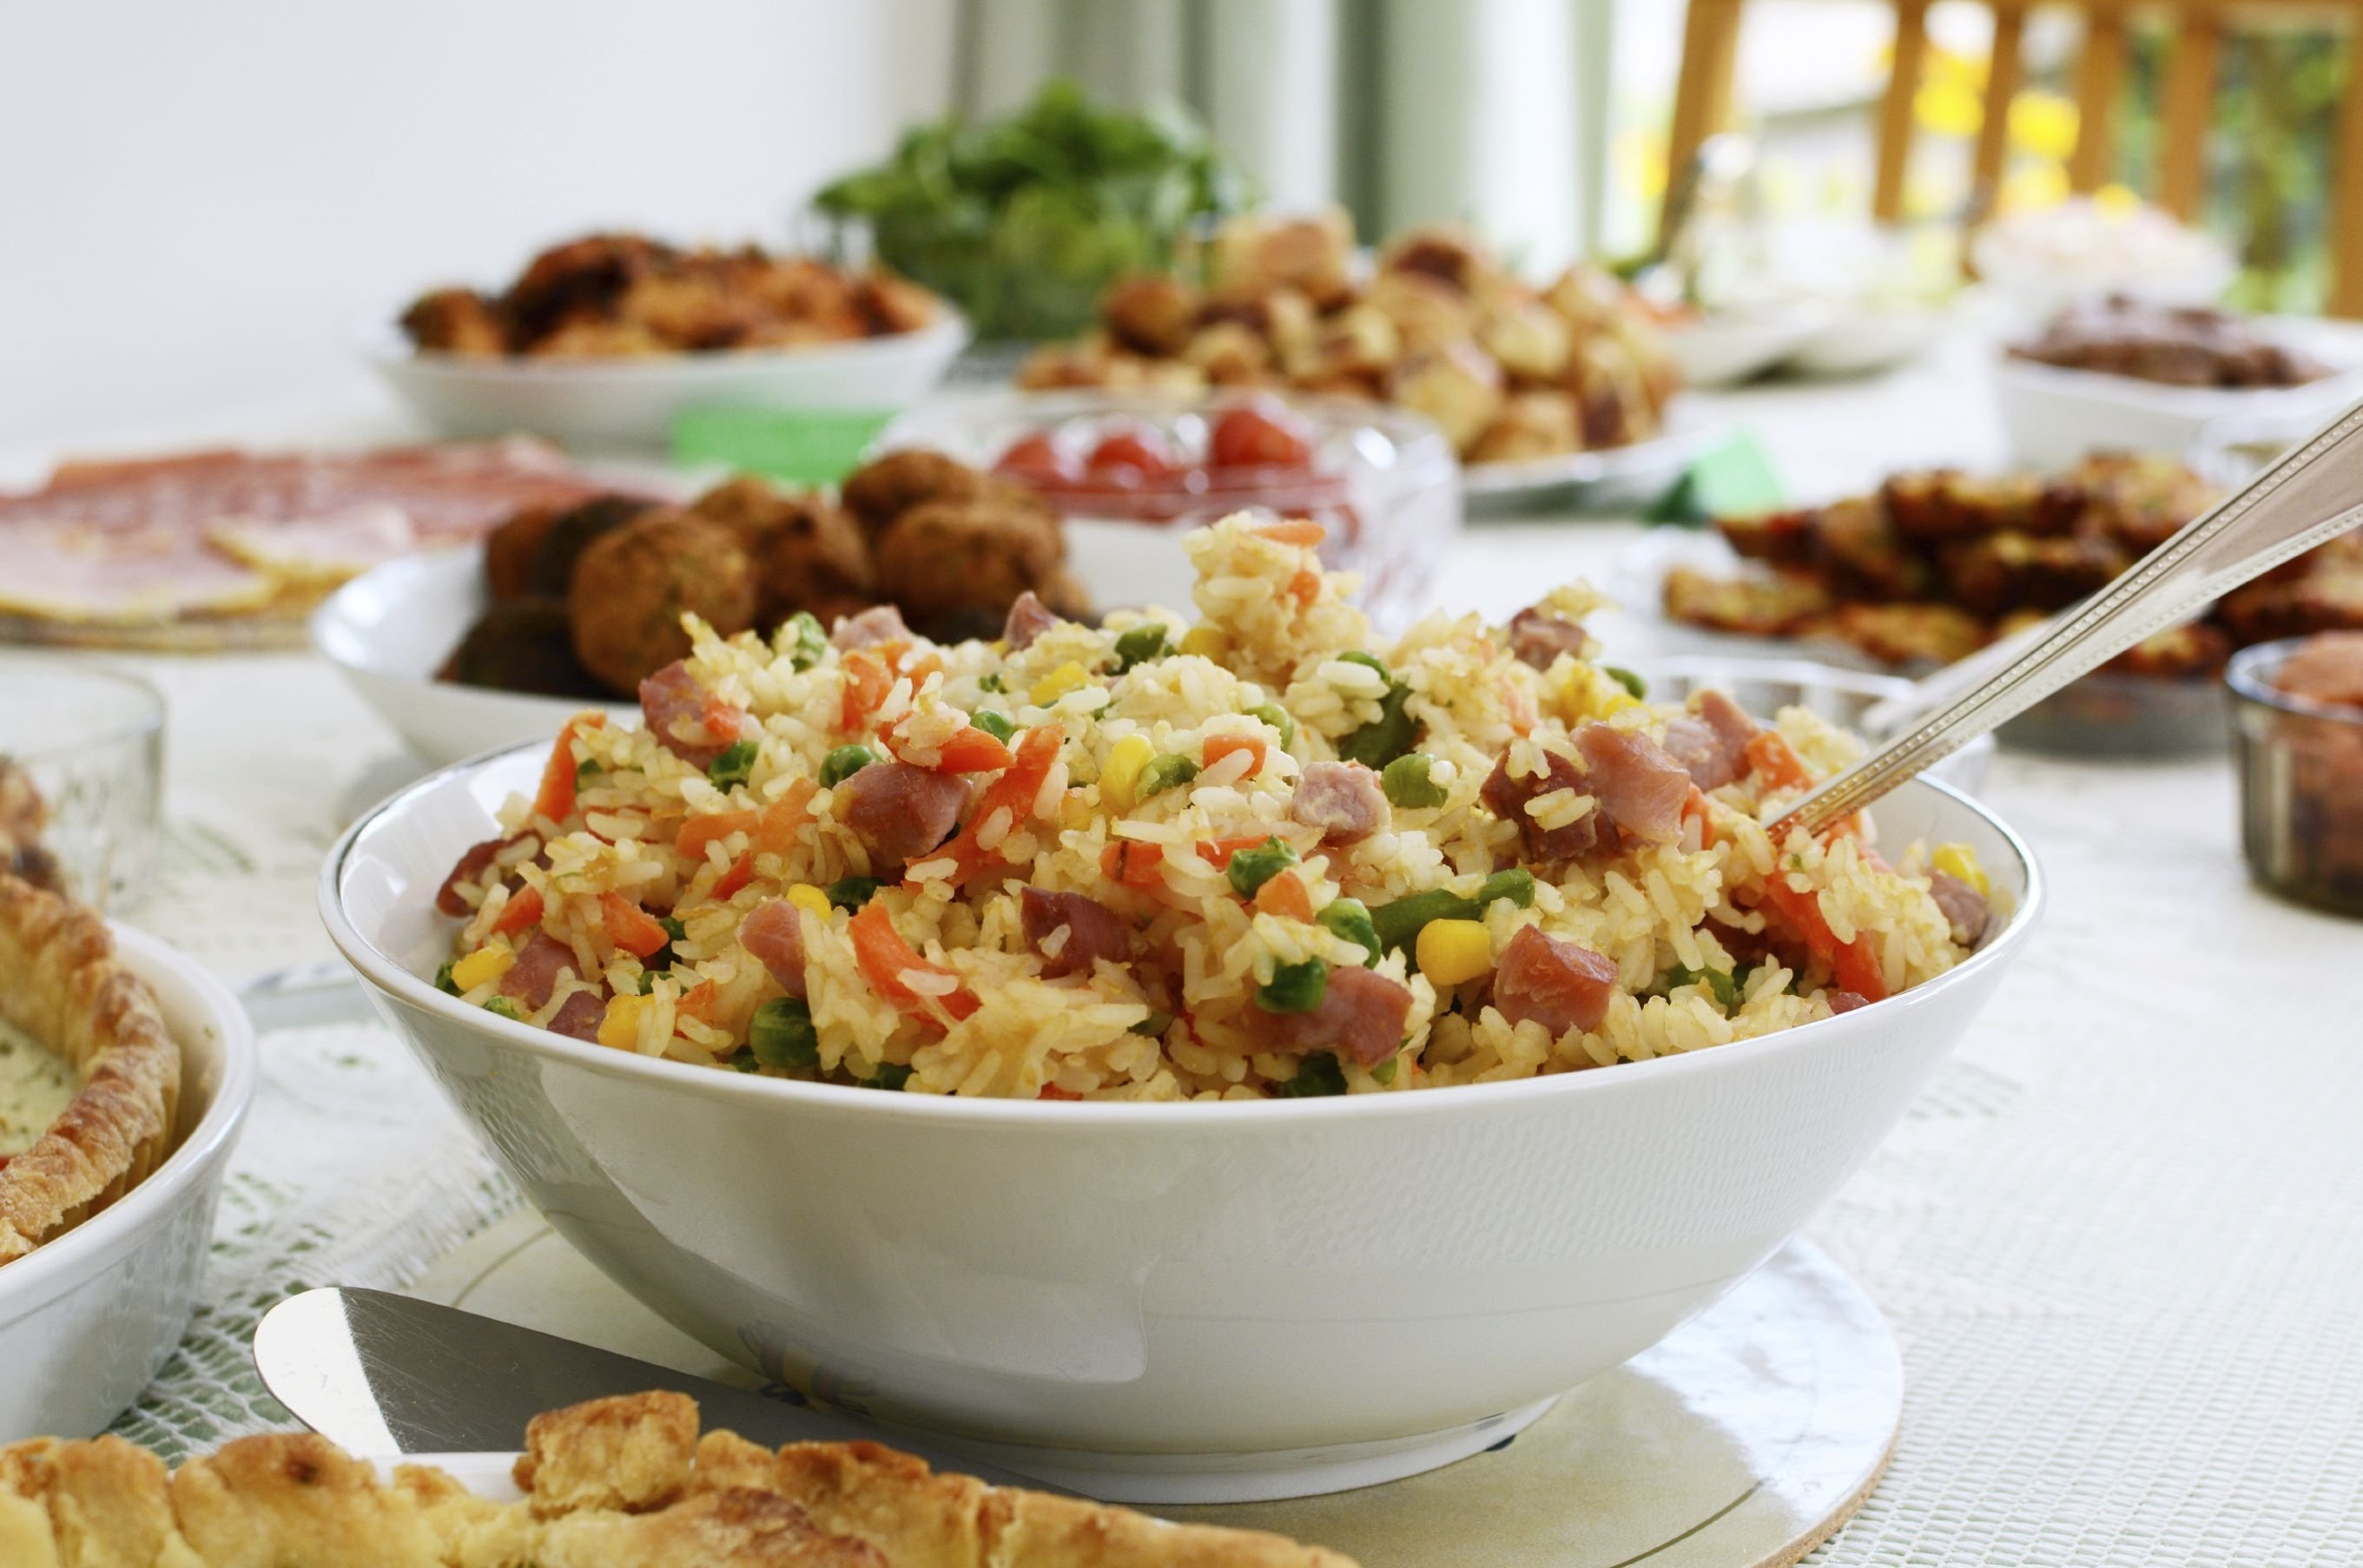 10 Most Popular Potluck Theme Ideas For Work 30 potluck themes for work events potluck themes potlucks and lunches 1 2020